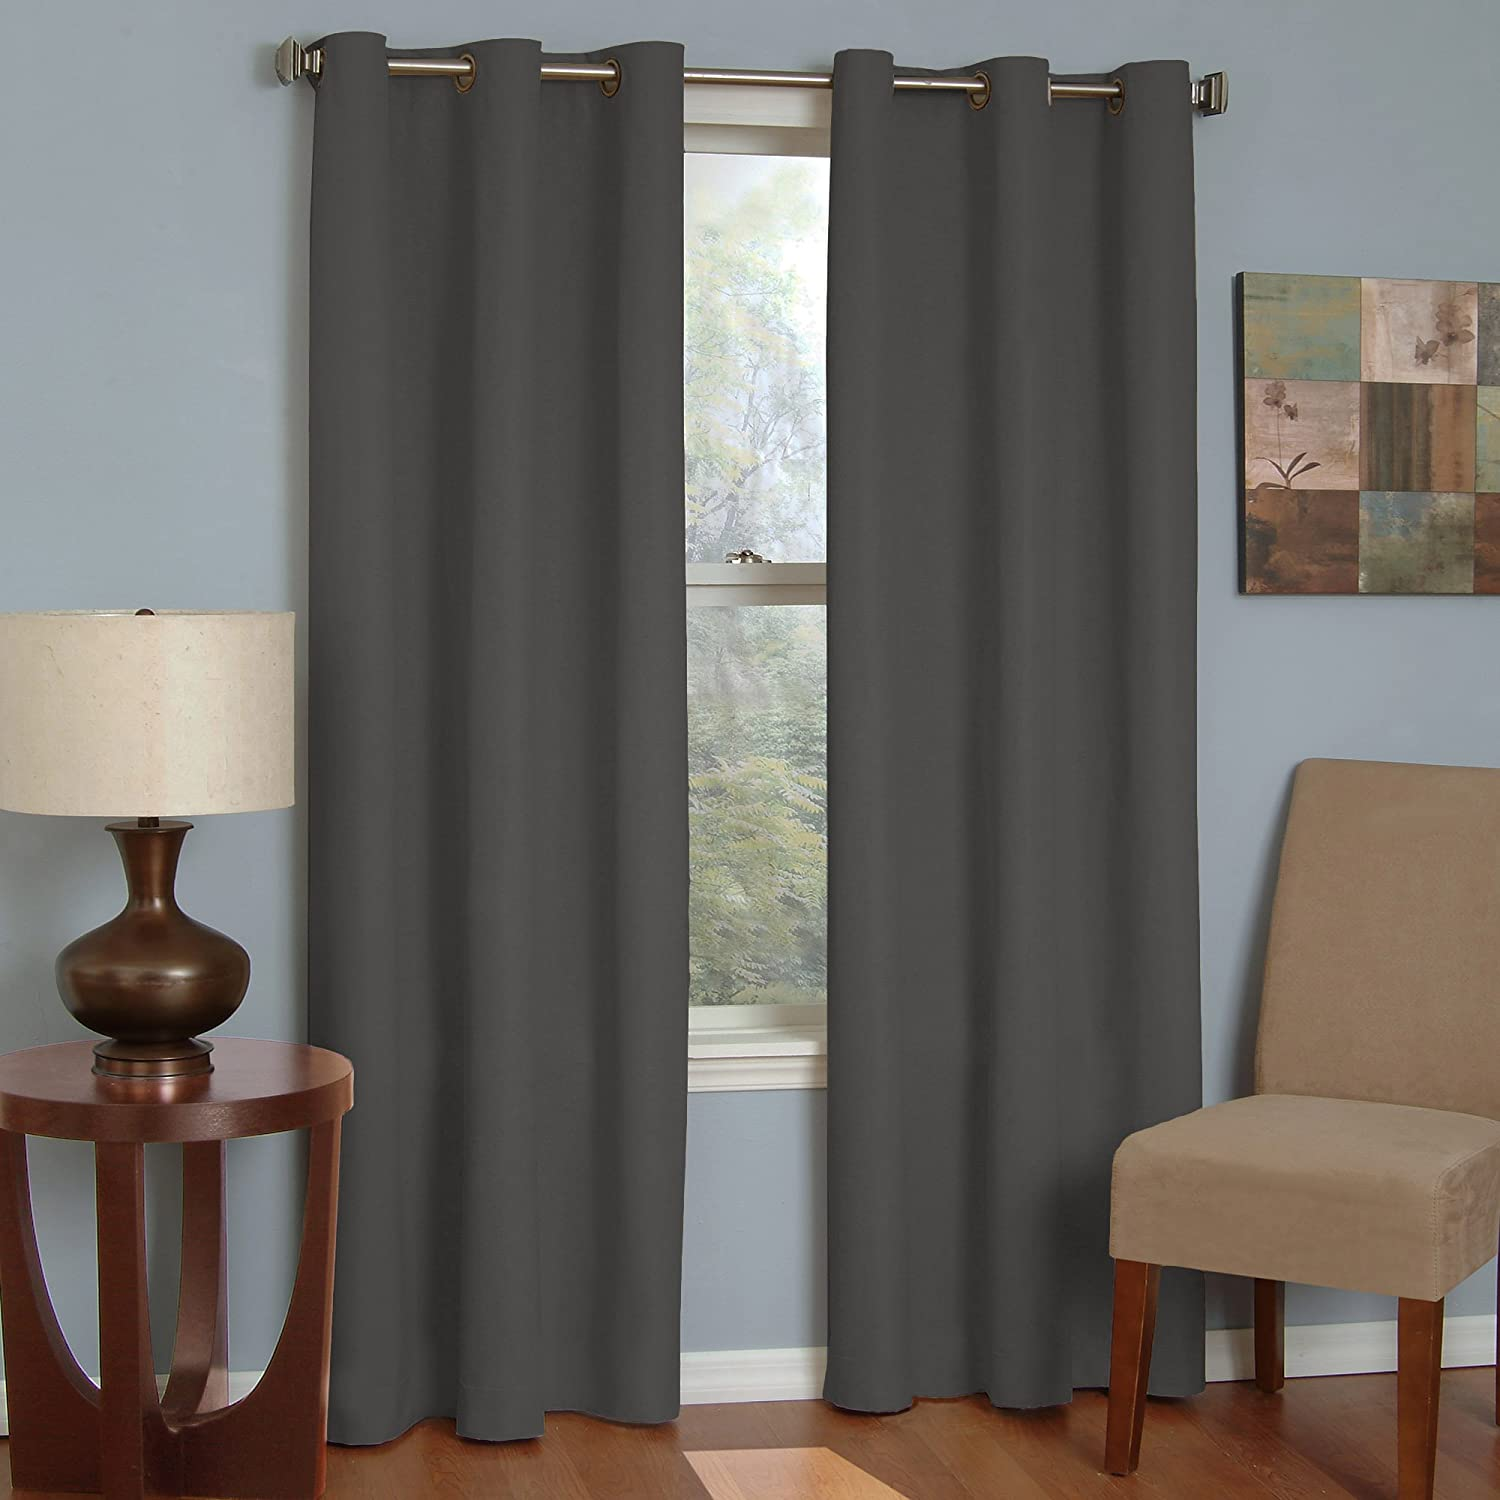 Smoke Ellery Homestyles Eclipse 10708042X095SMK Microfiber 42-Inch by 95-Inch Thermaback Grommet Blackout Single Window Panel